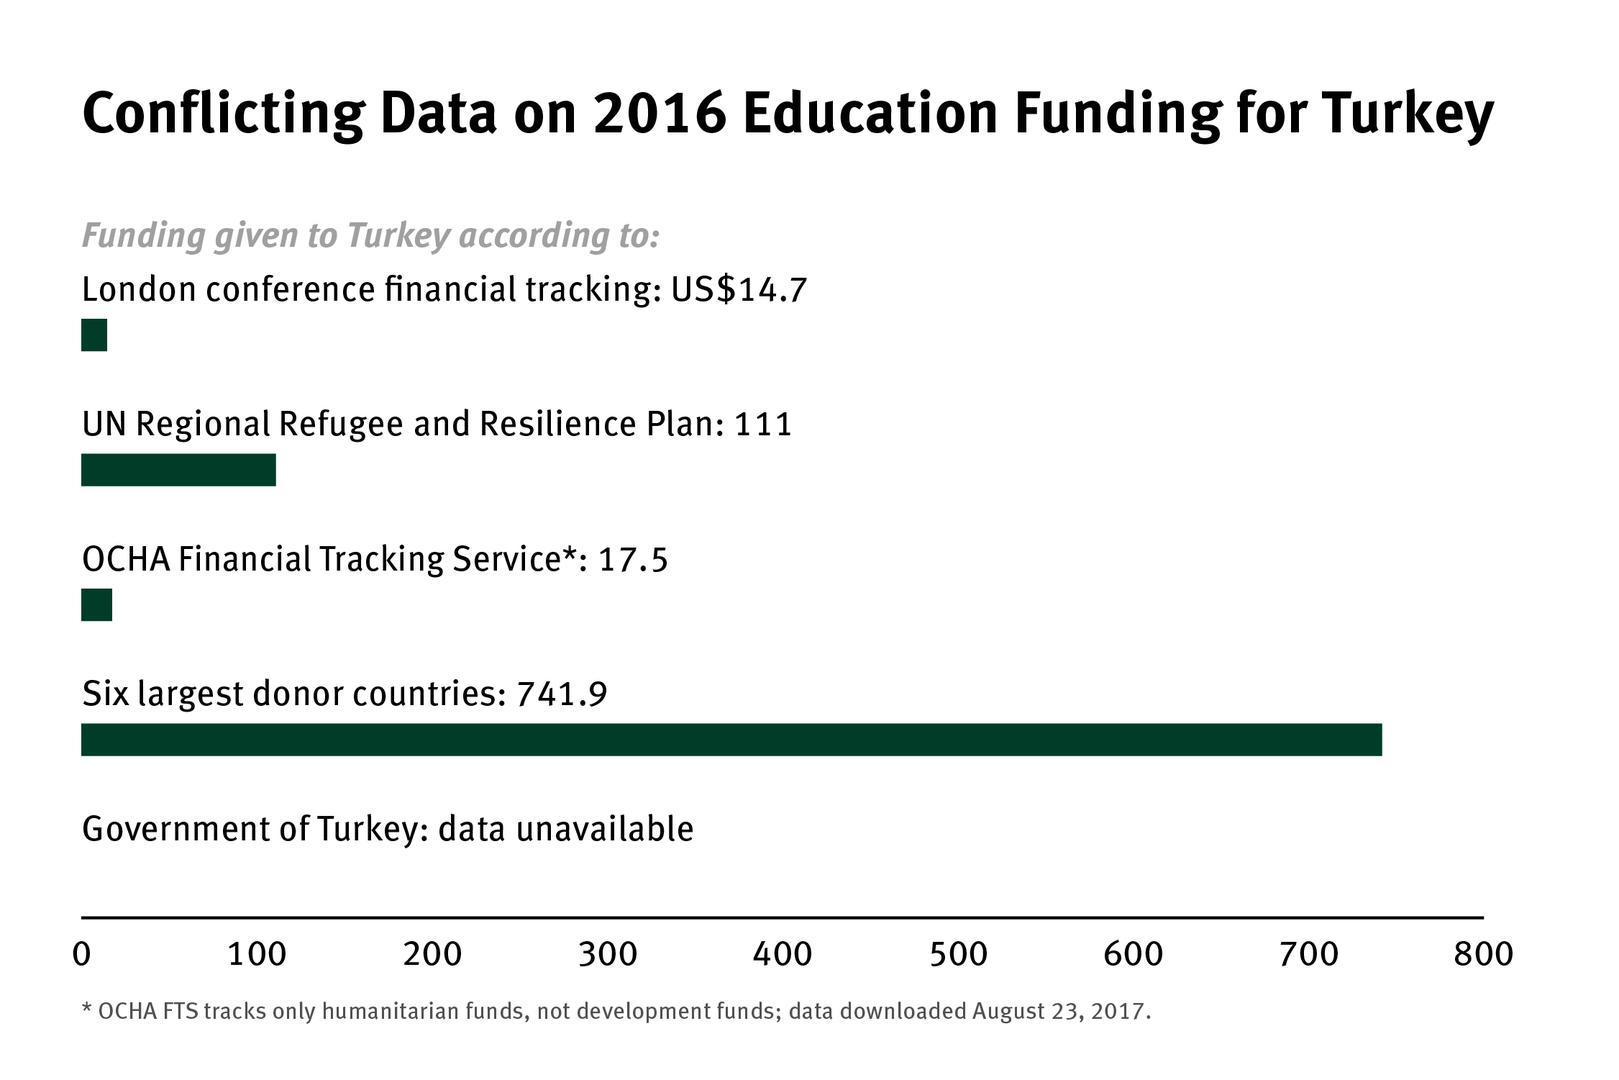 Conflicting data on 2016 education funding for Turkey